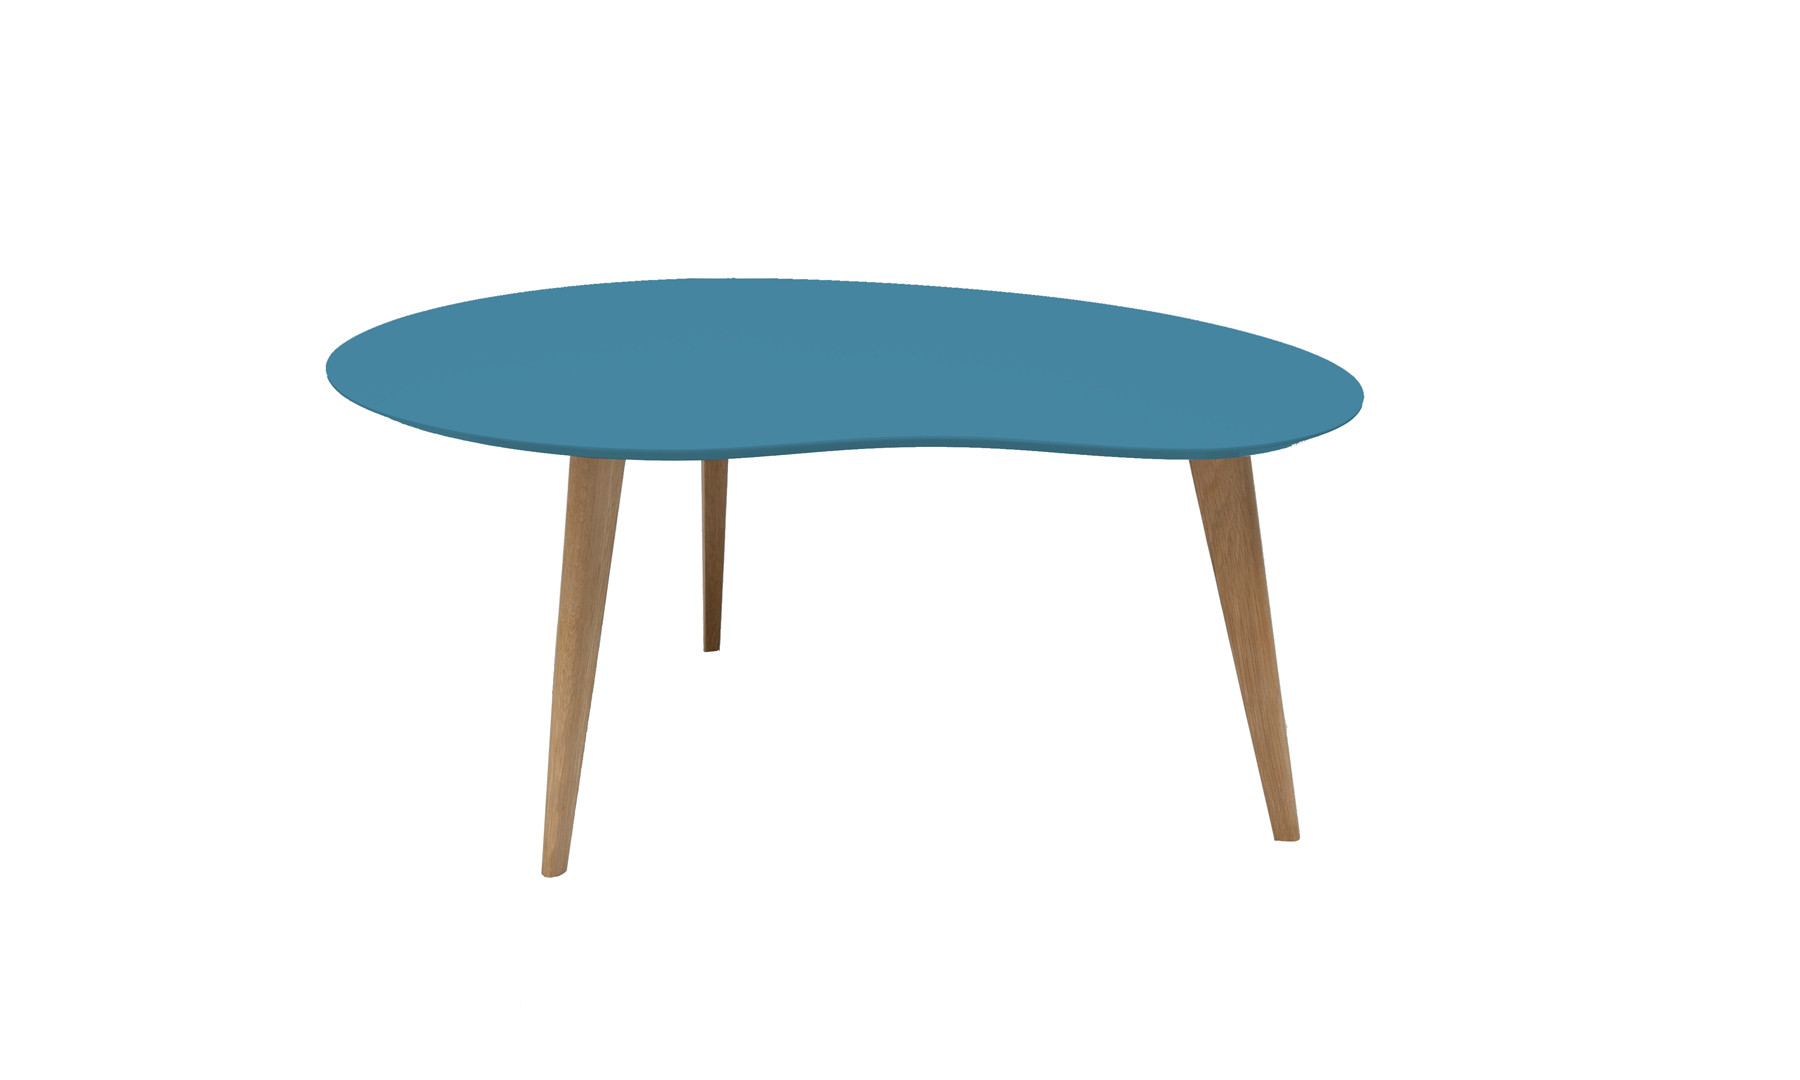 Table lalinde free form tables for Html form table